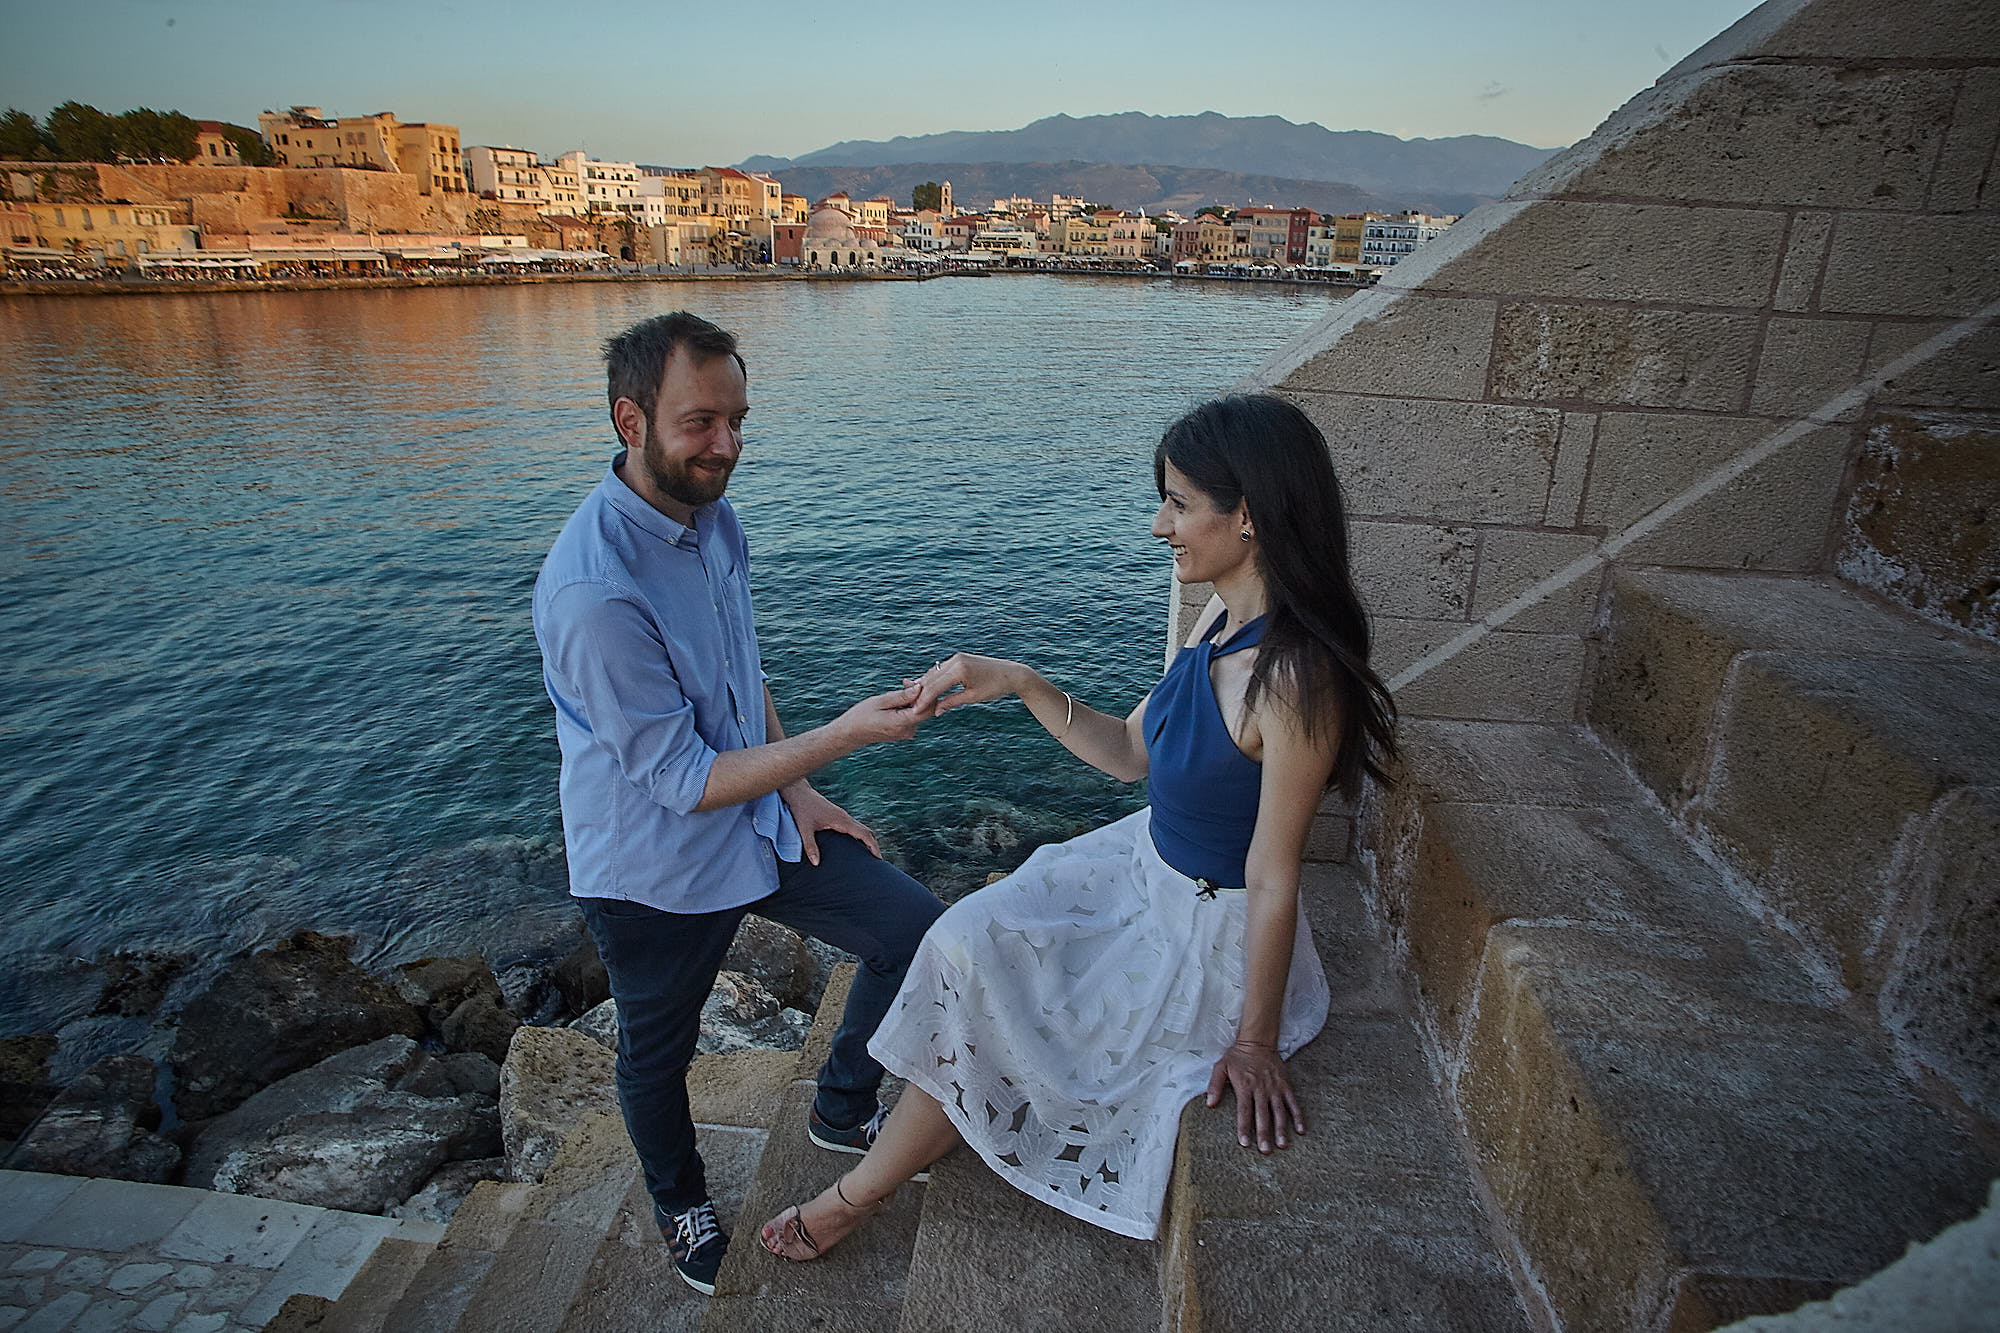 Wedding Photo Shoot in Chania Pre Wedding Crete Rethymno Couple the Dreammakers Elopment Destination Wedding Photography Videography Photo Video Photo Shoot